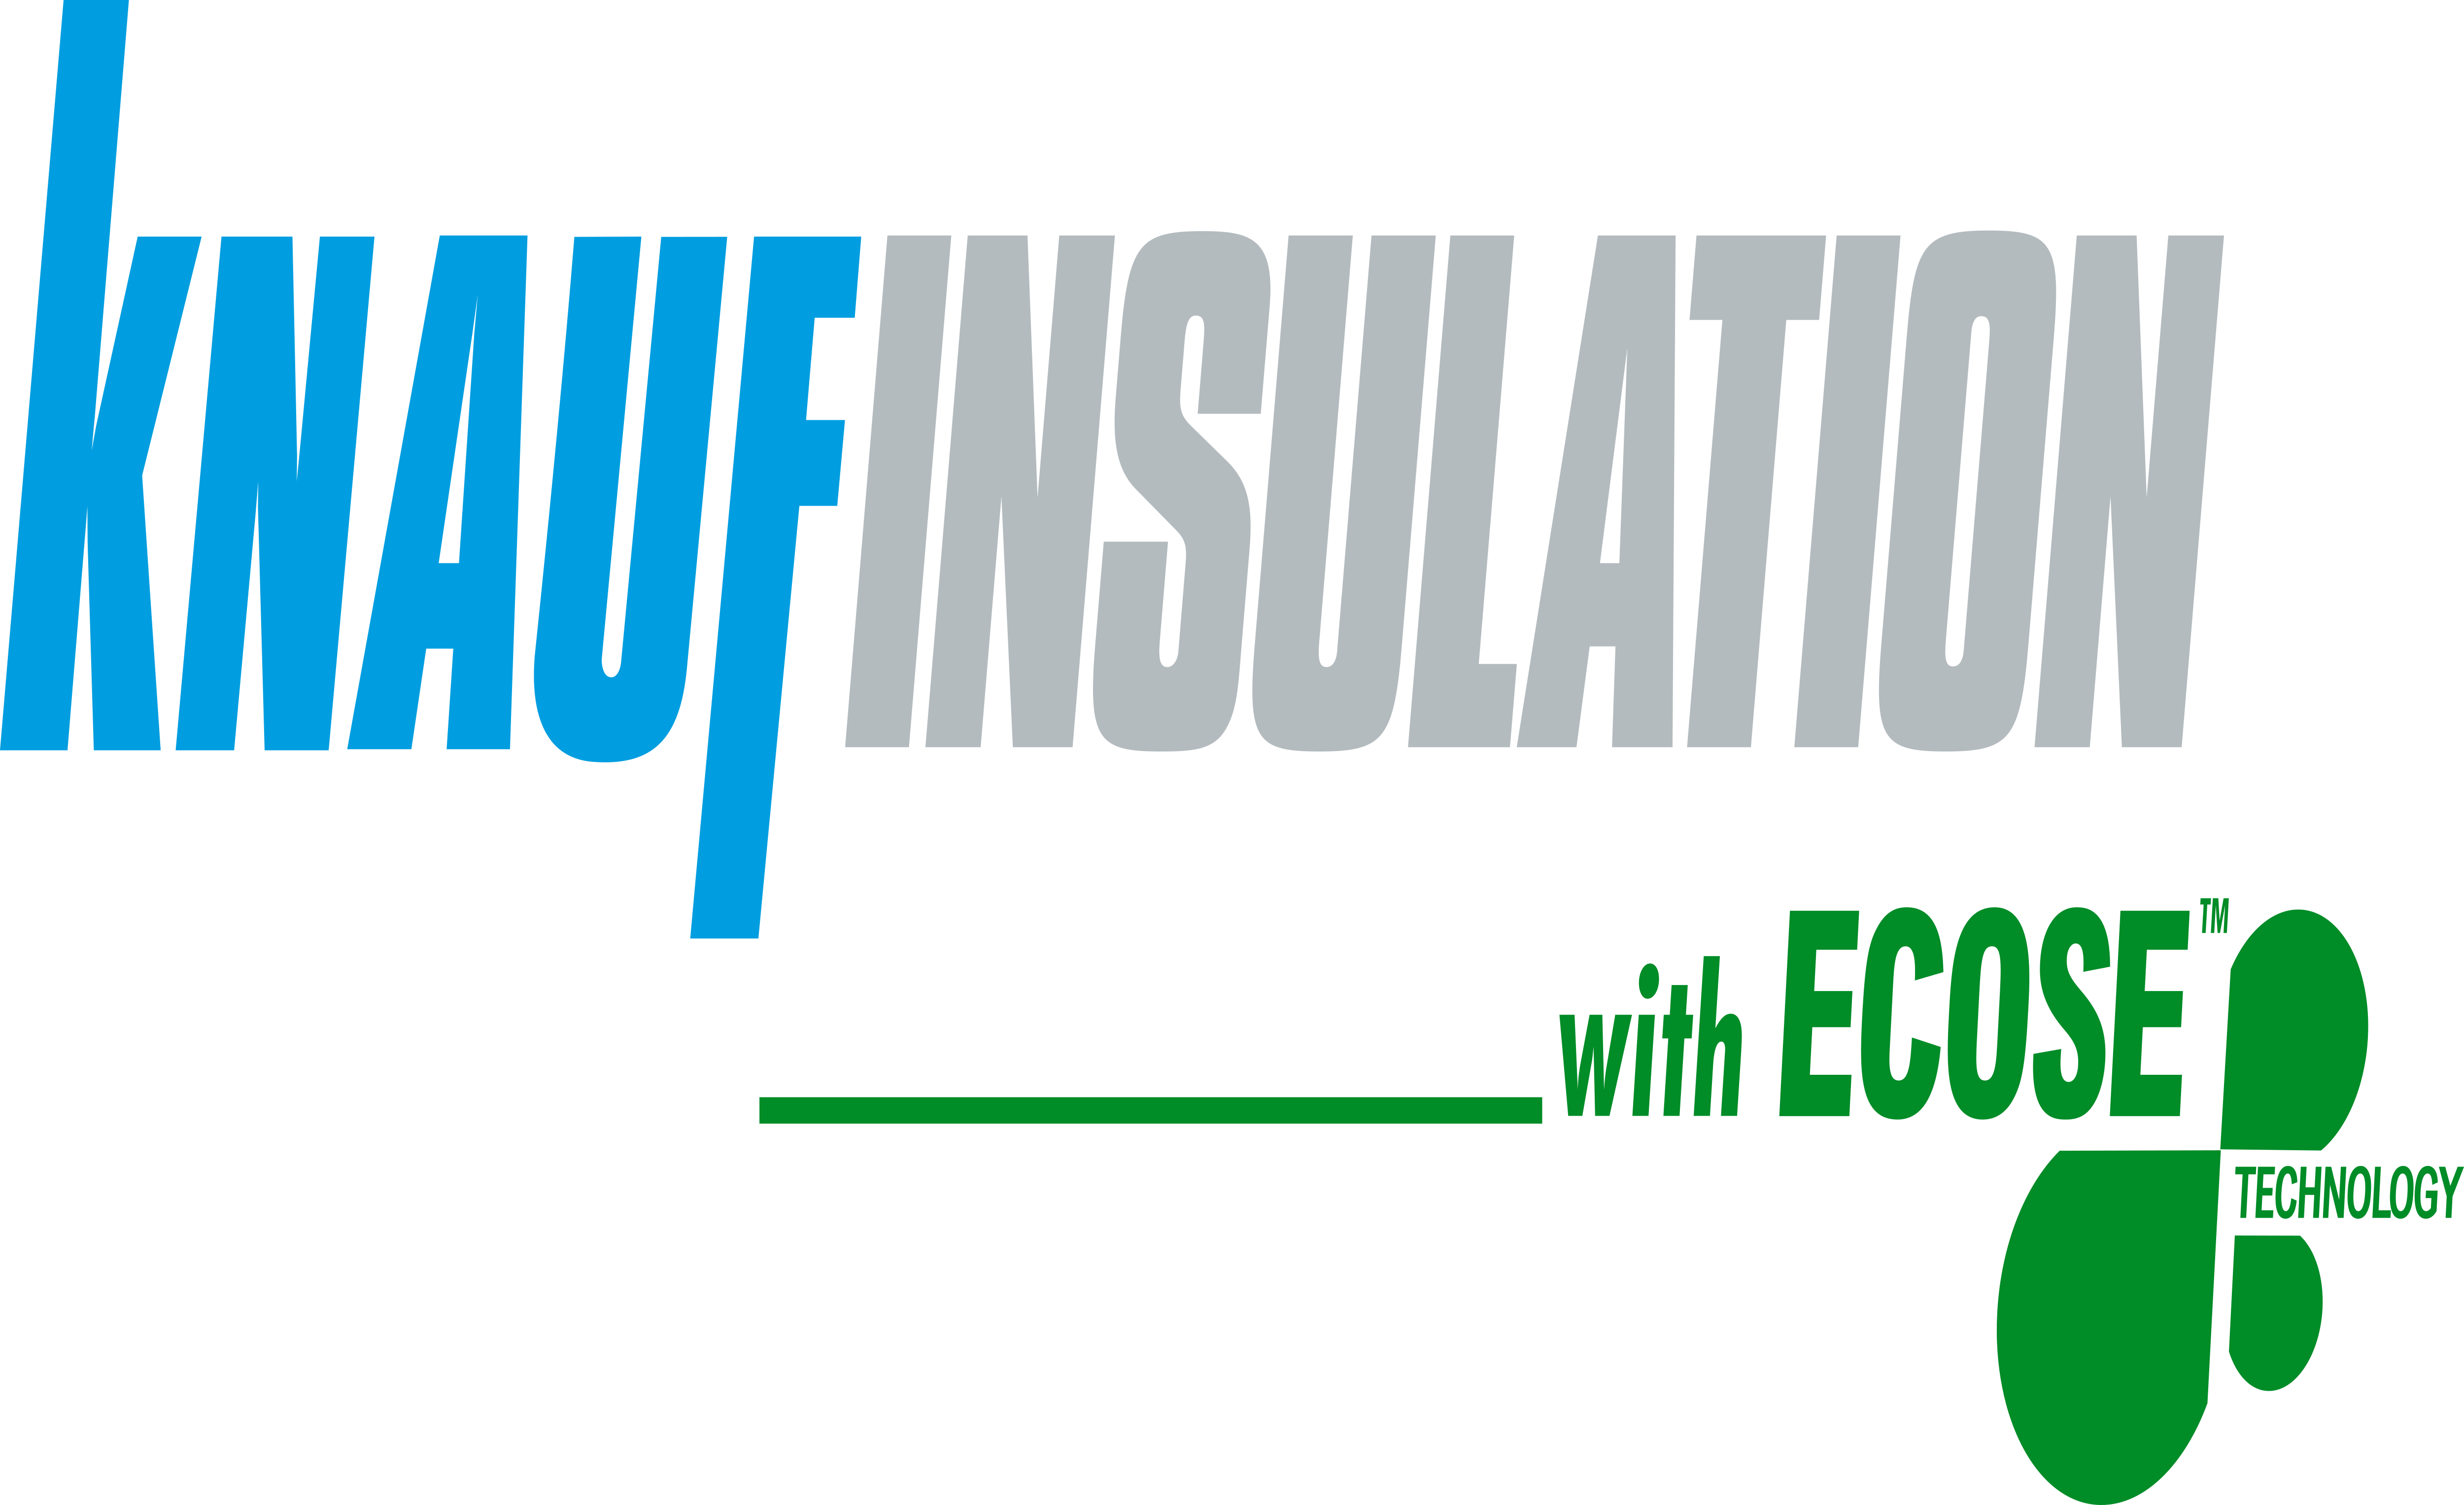 Knauf Insulation With Ecose Technology – Logos Download